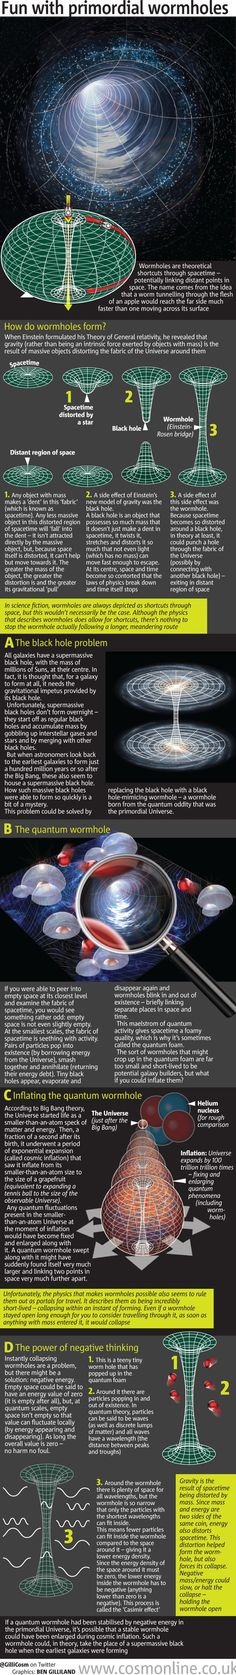 Fun With Primordial Wormholes